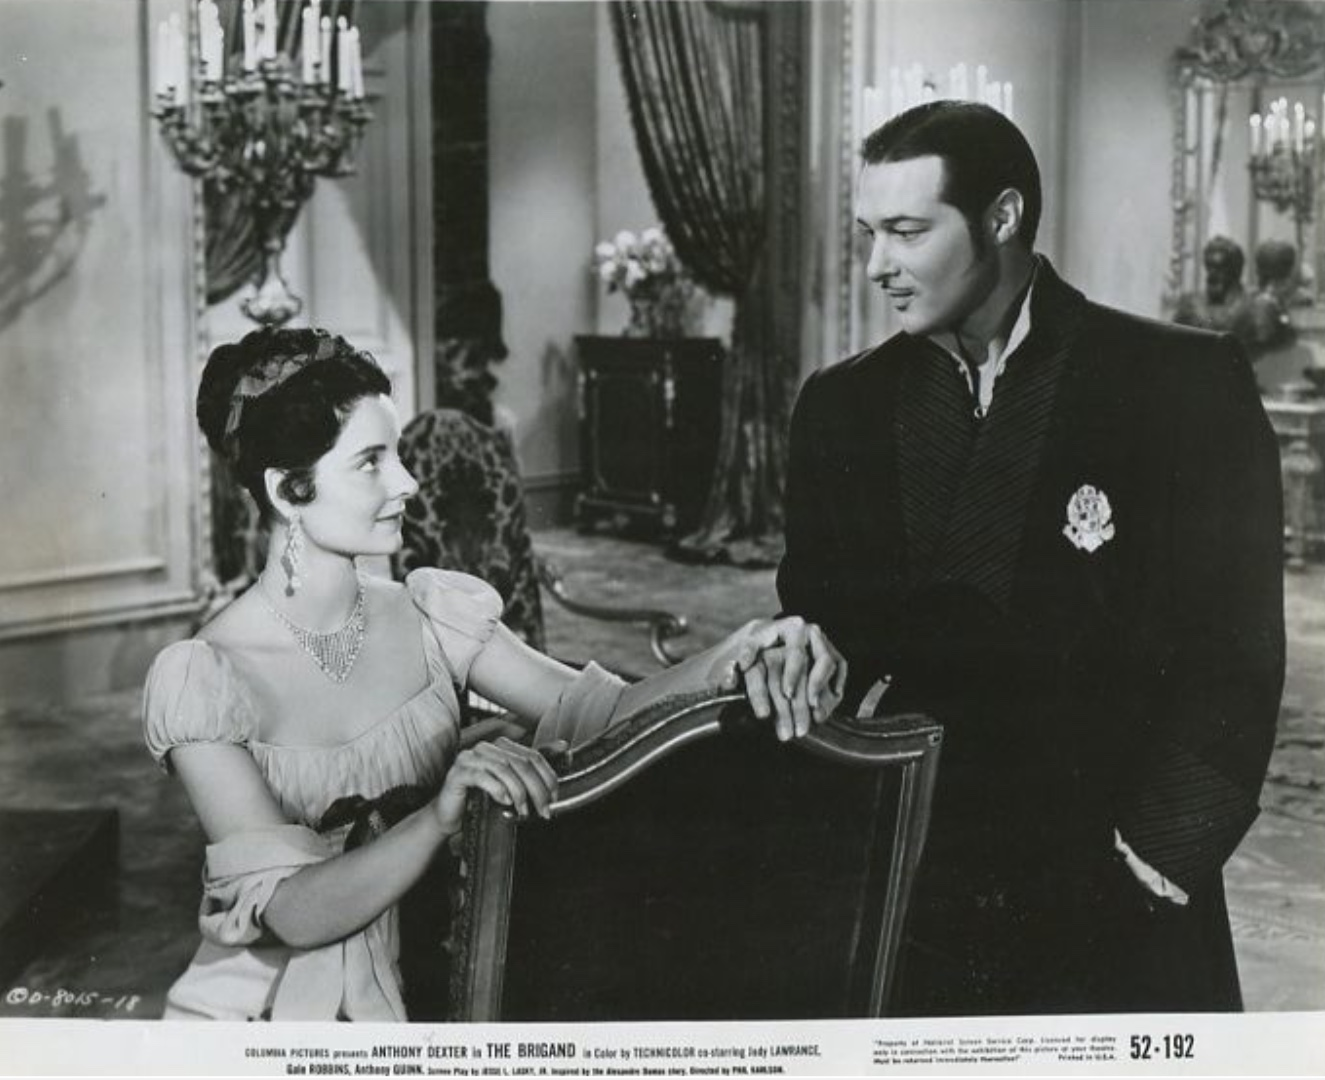 Anthony Dexter and Jody Lawrance in The Brigand (1952)